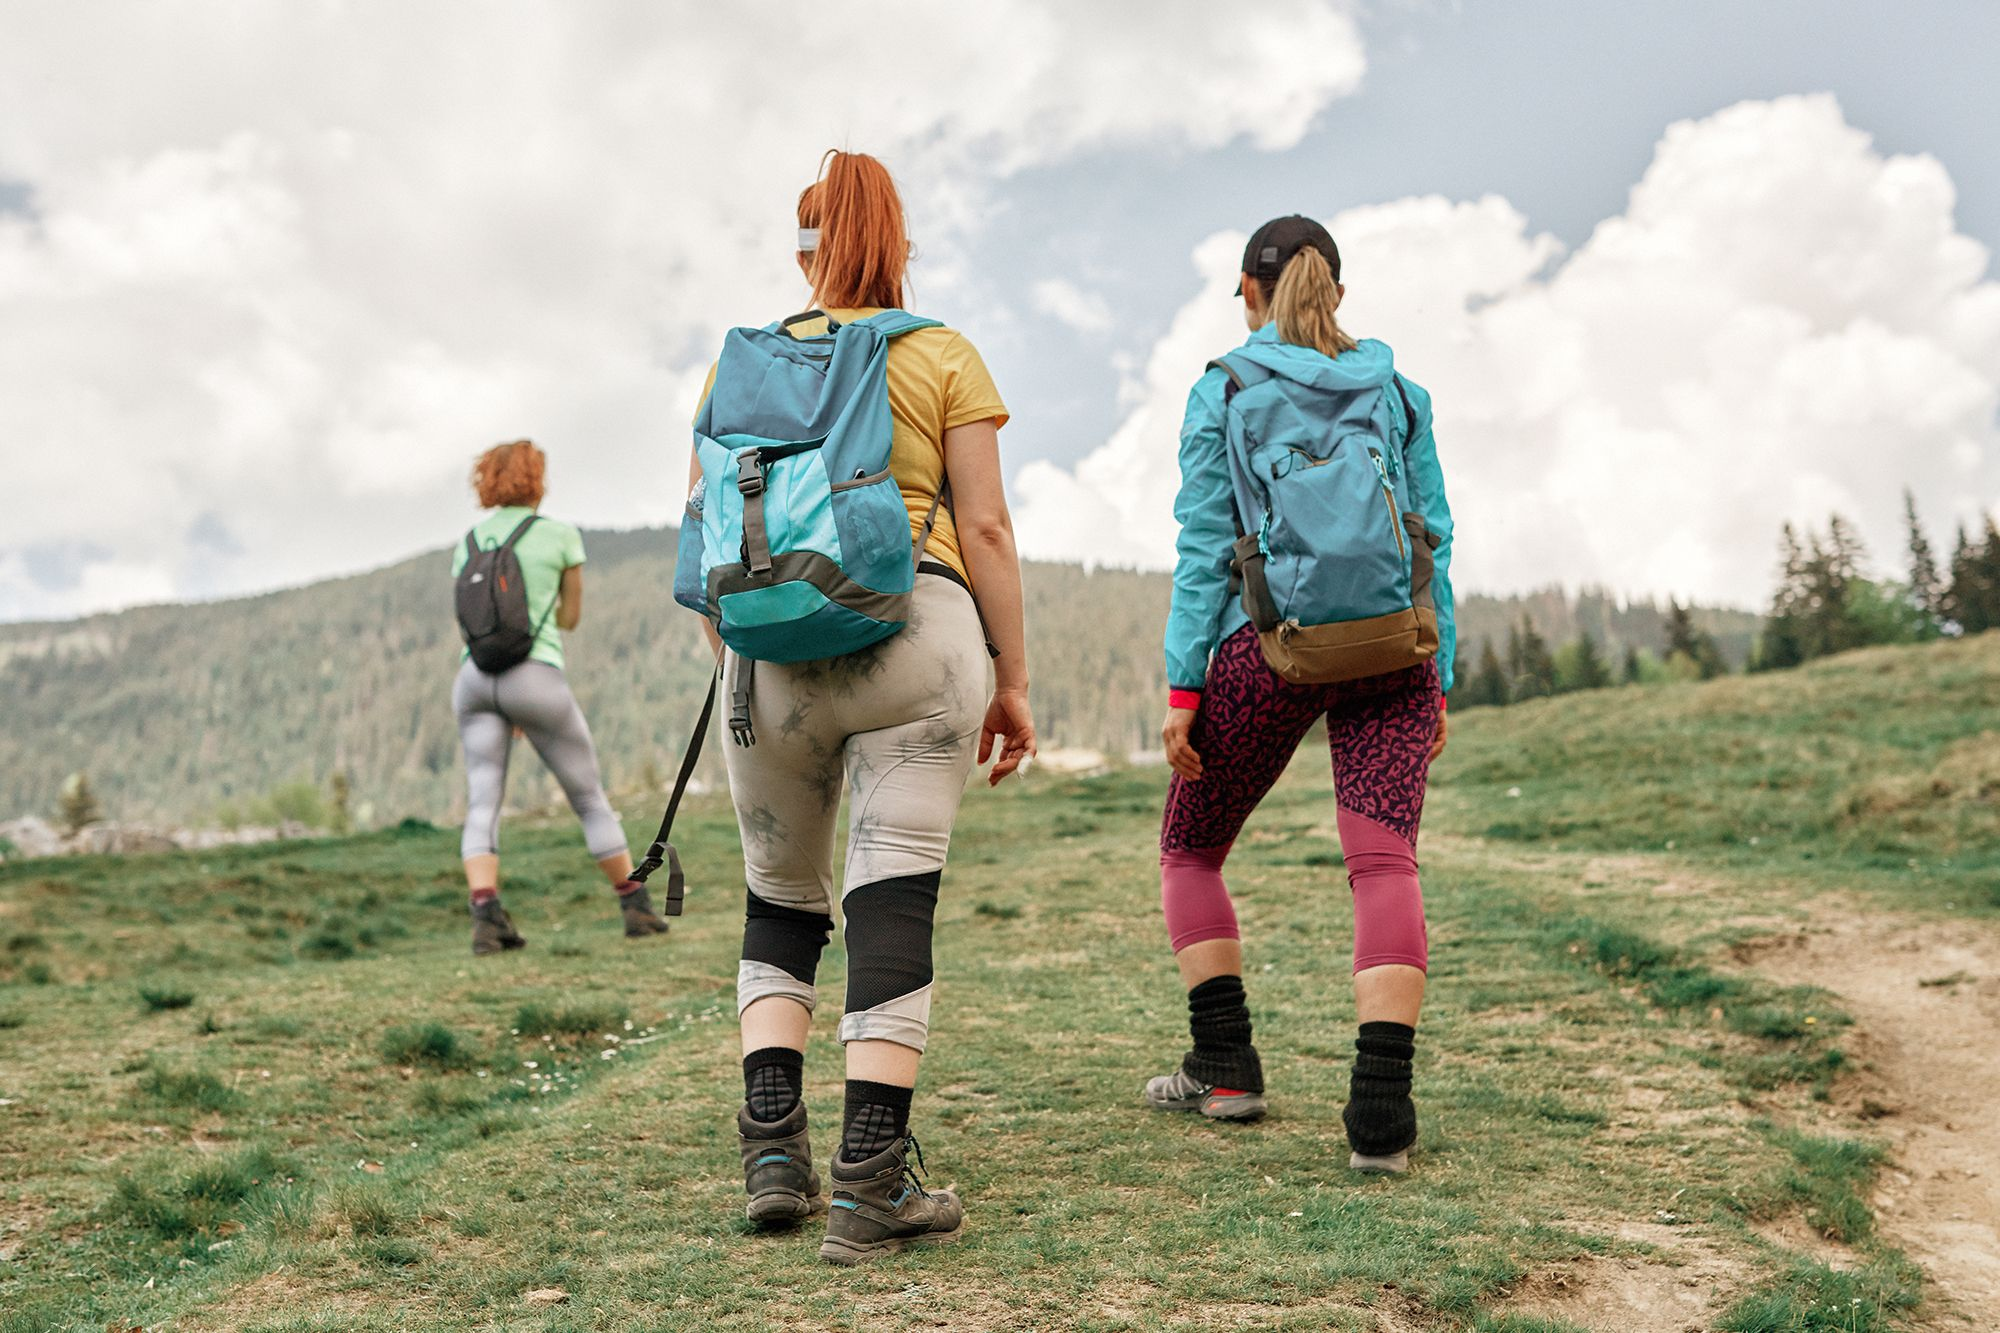 Hiking Clothes: Tip For Summer